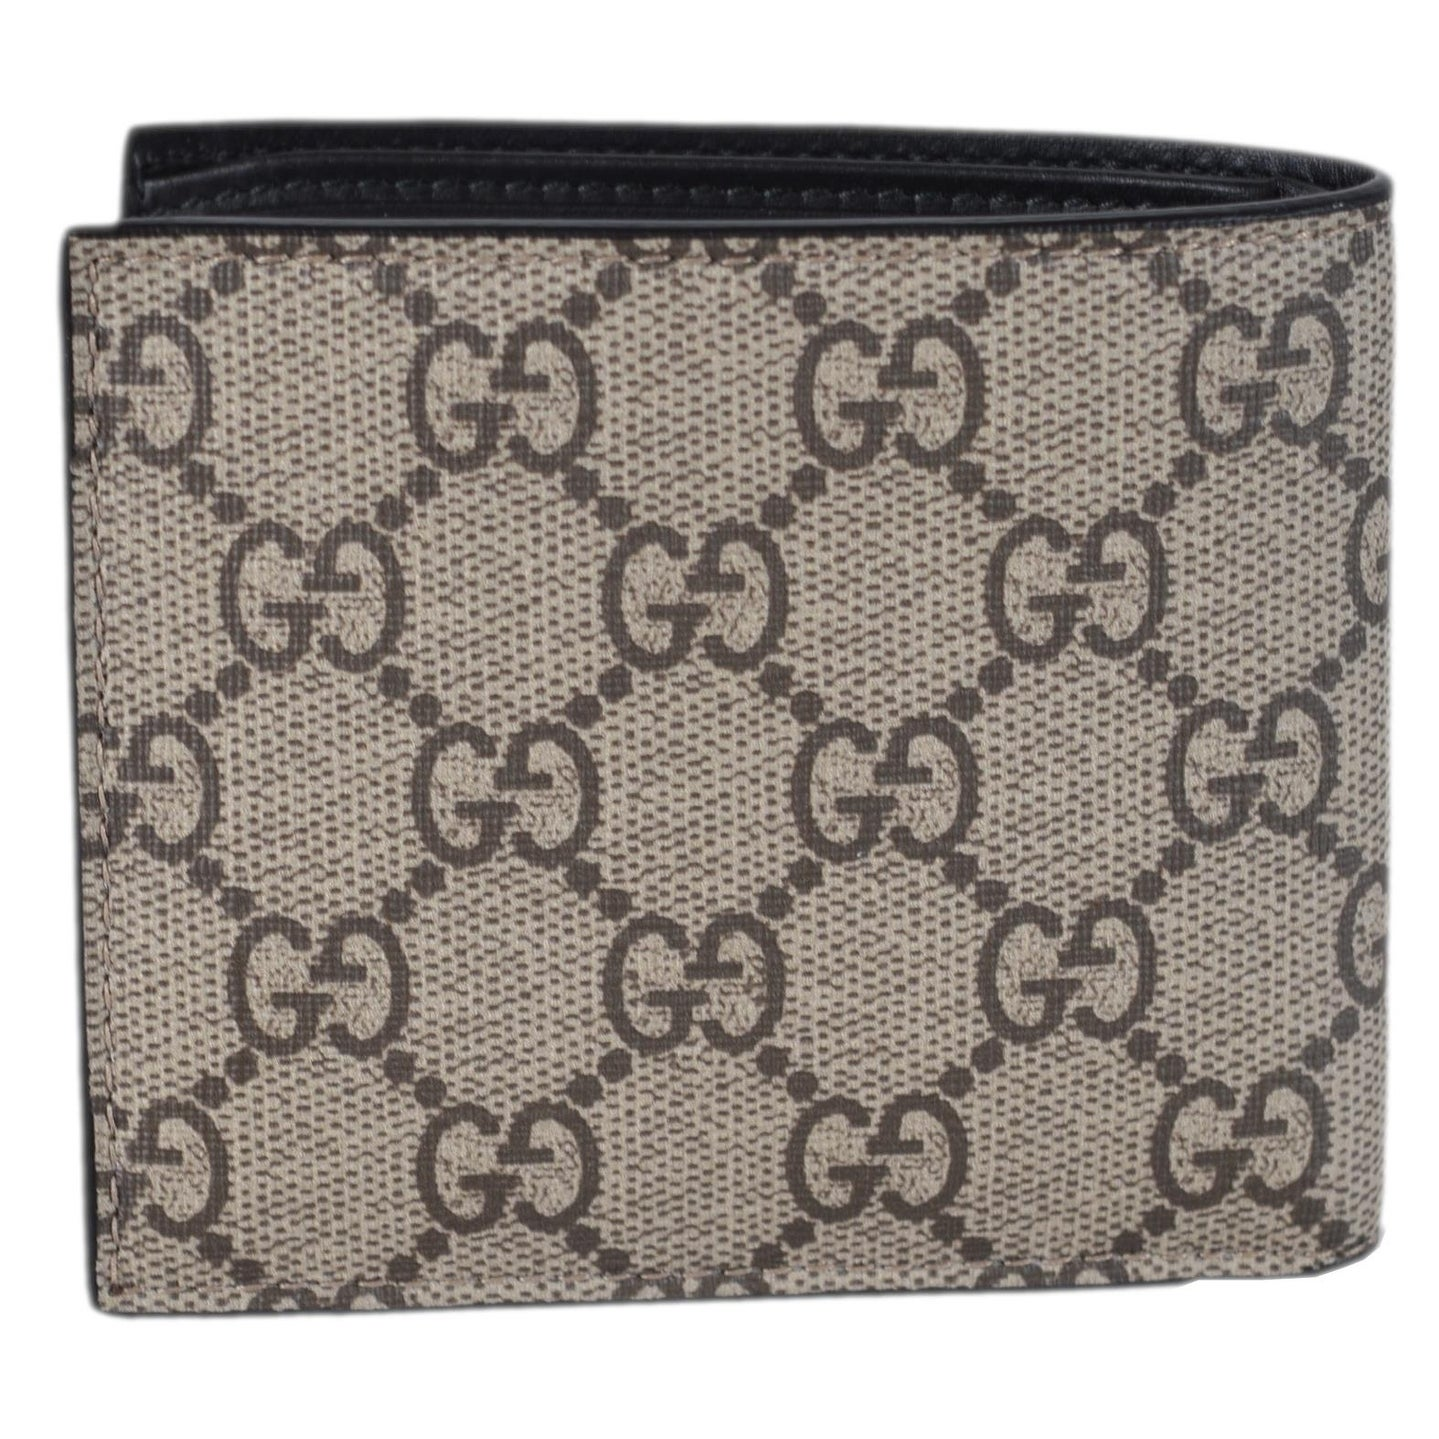 b144773c4aecec Shop Gucci Men's Beige GG Supreme Canvas Angry Bengal Tiger Bifold Wallet -  measures 4.25 x 3.5 inches - Free Shipping Today - Overstock - 25435884